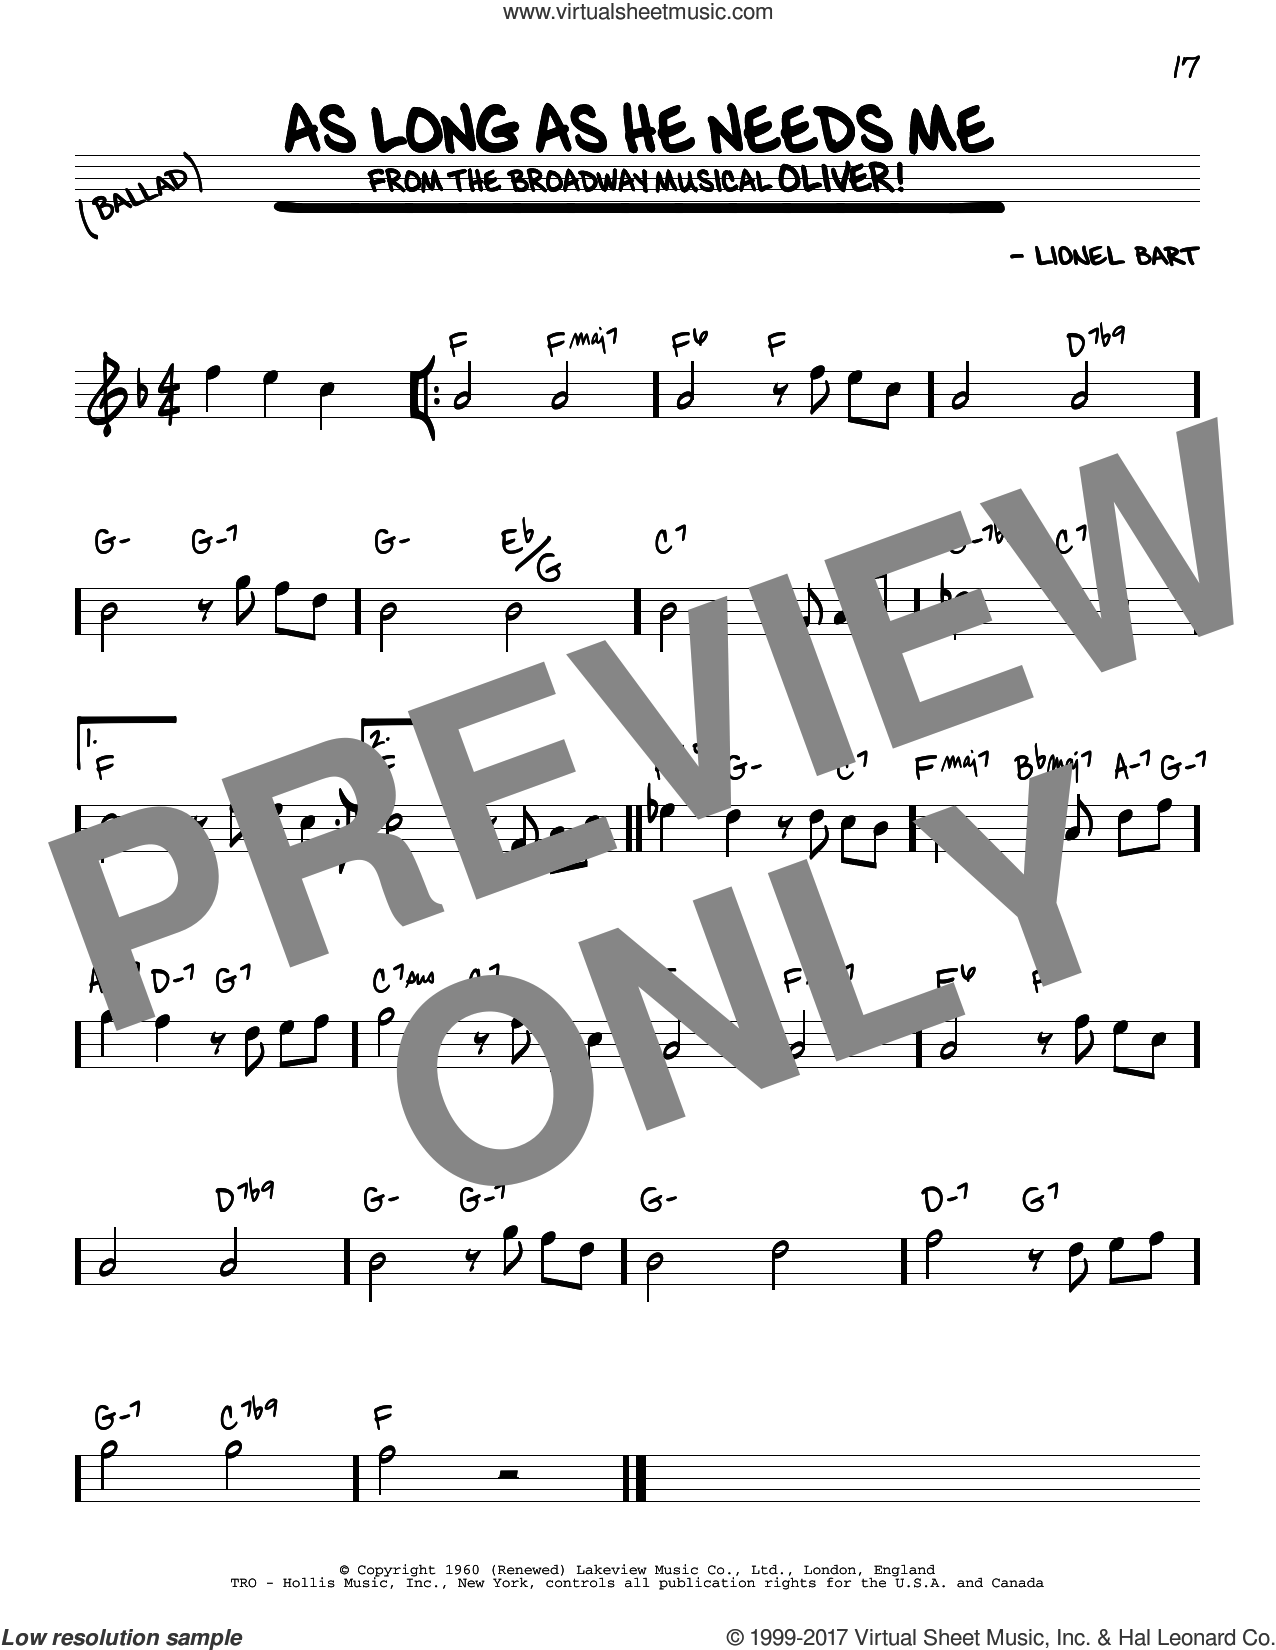 As Long As He Needs Me sheet music for voice and other instruments (real book) by Lionel Bart, intermediate skill level